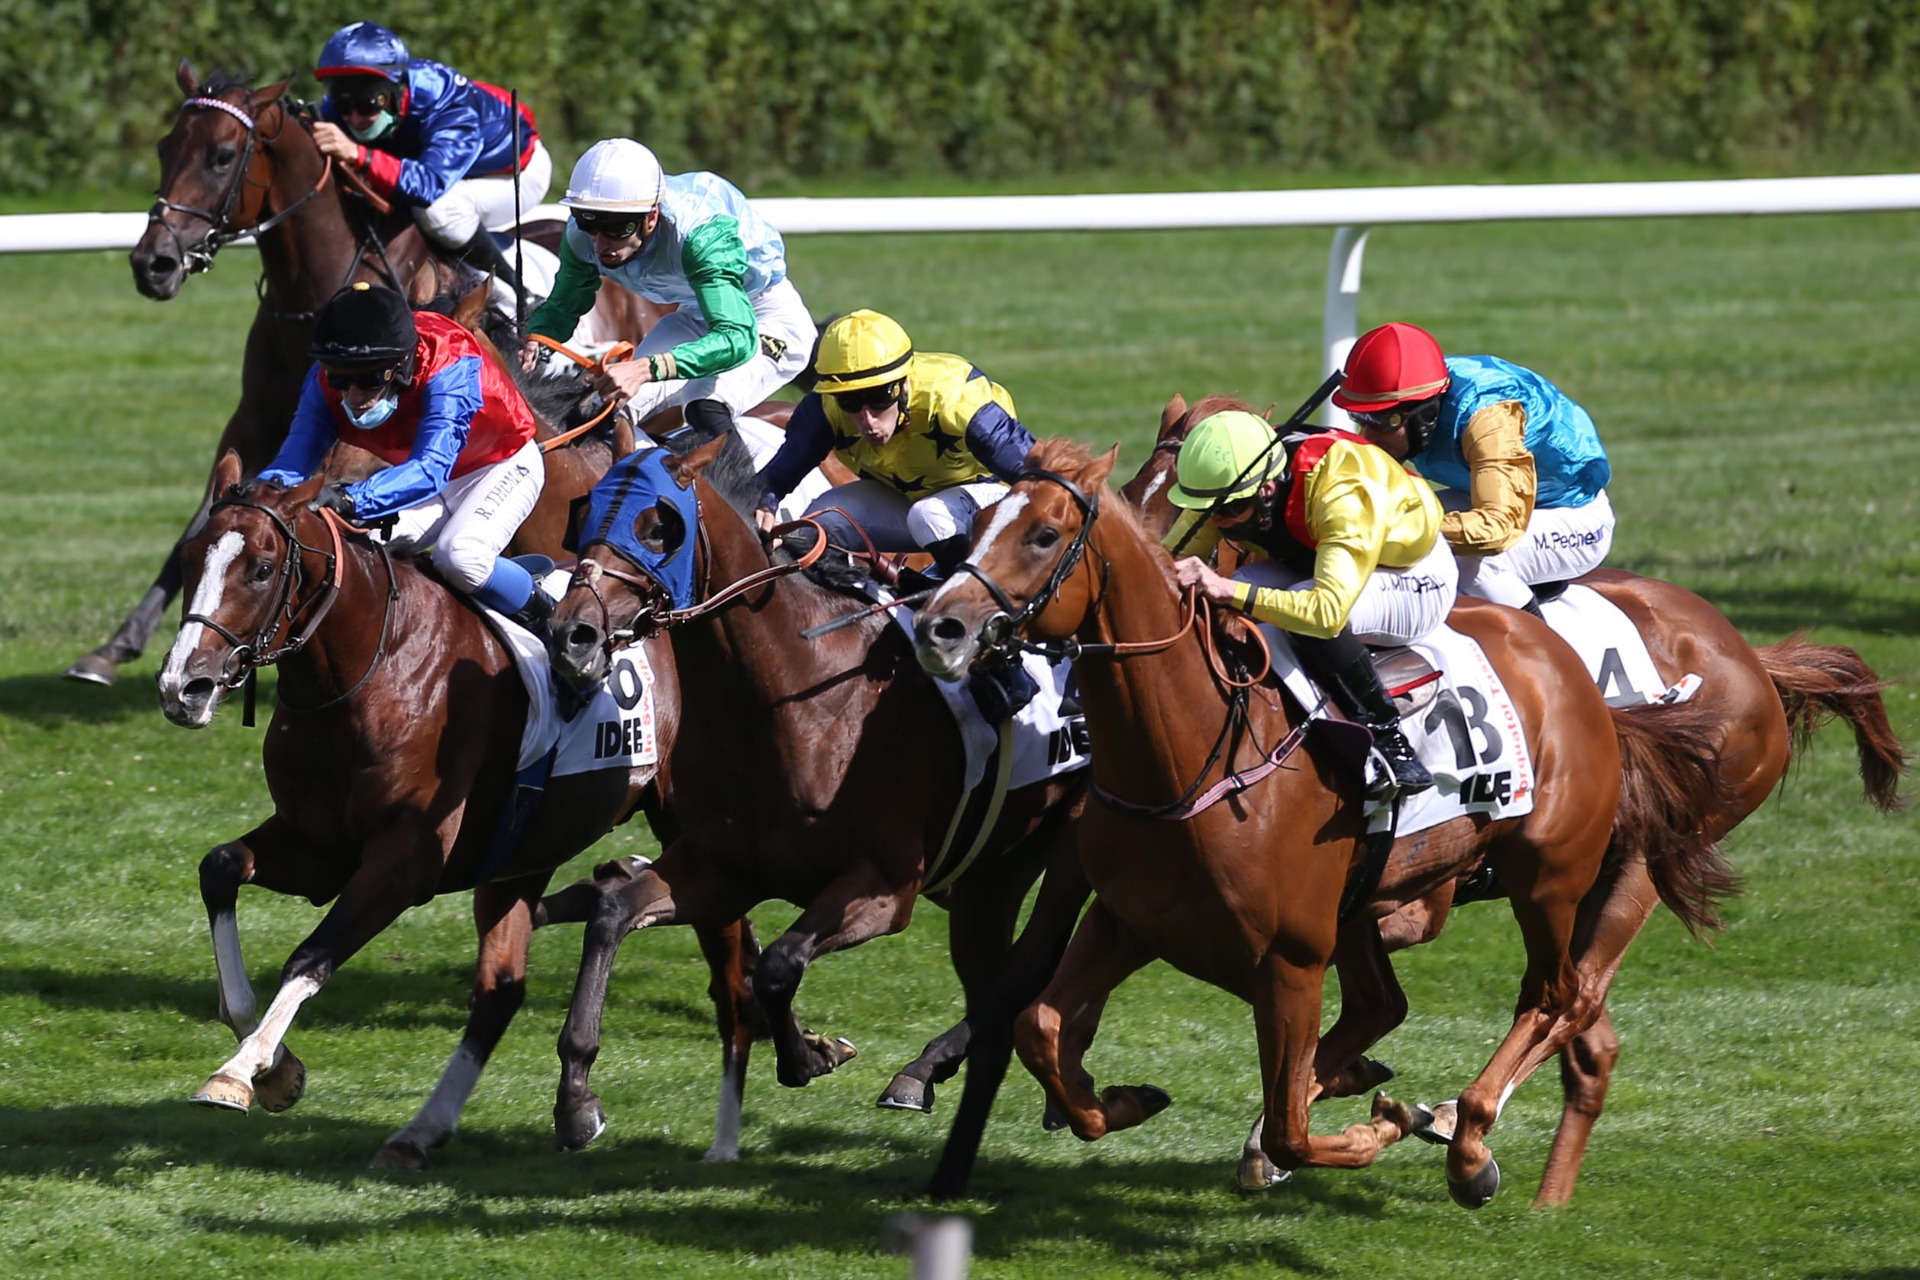 Galopp Derby Hamburg 2021